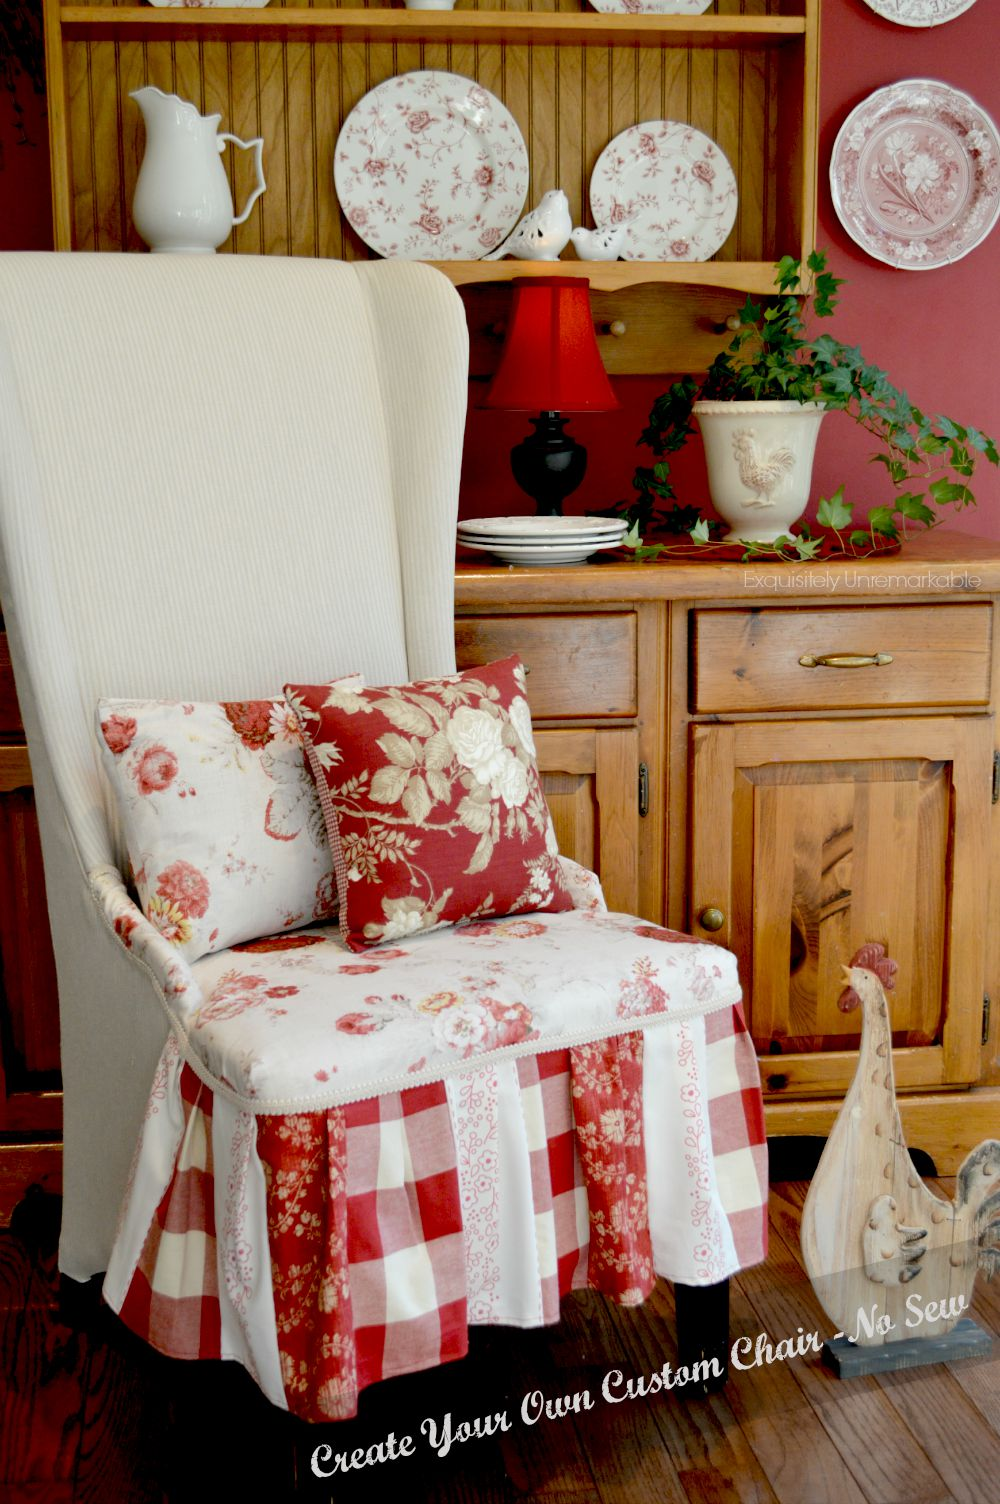 No Sew Reupholstered Chair